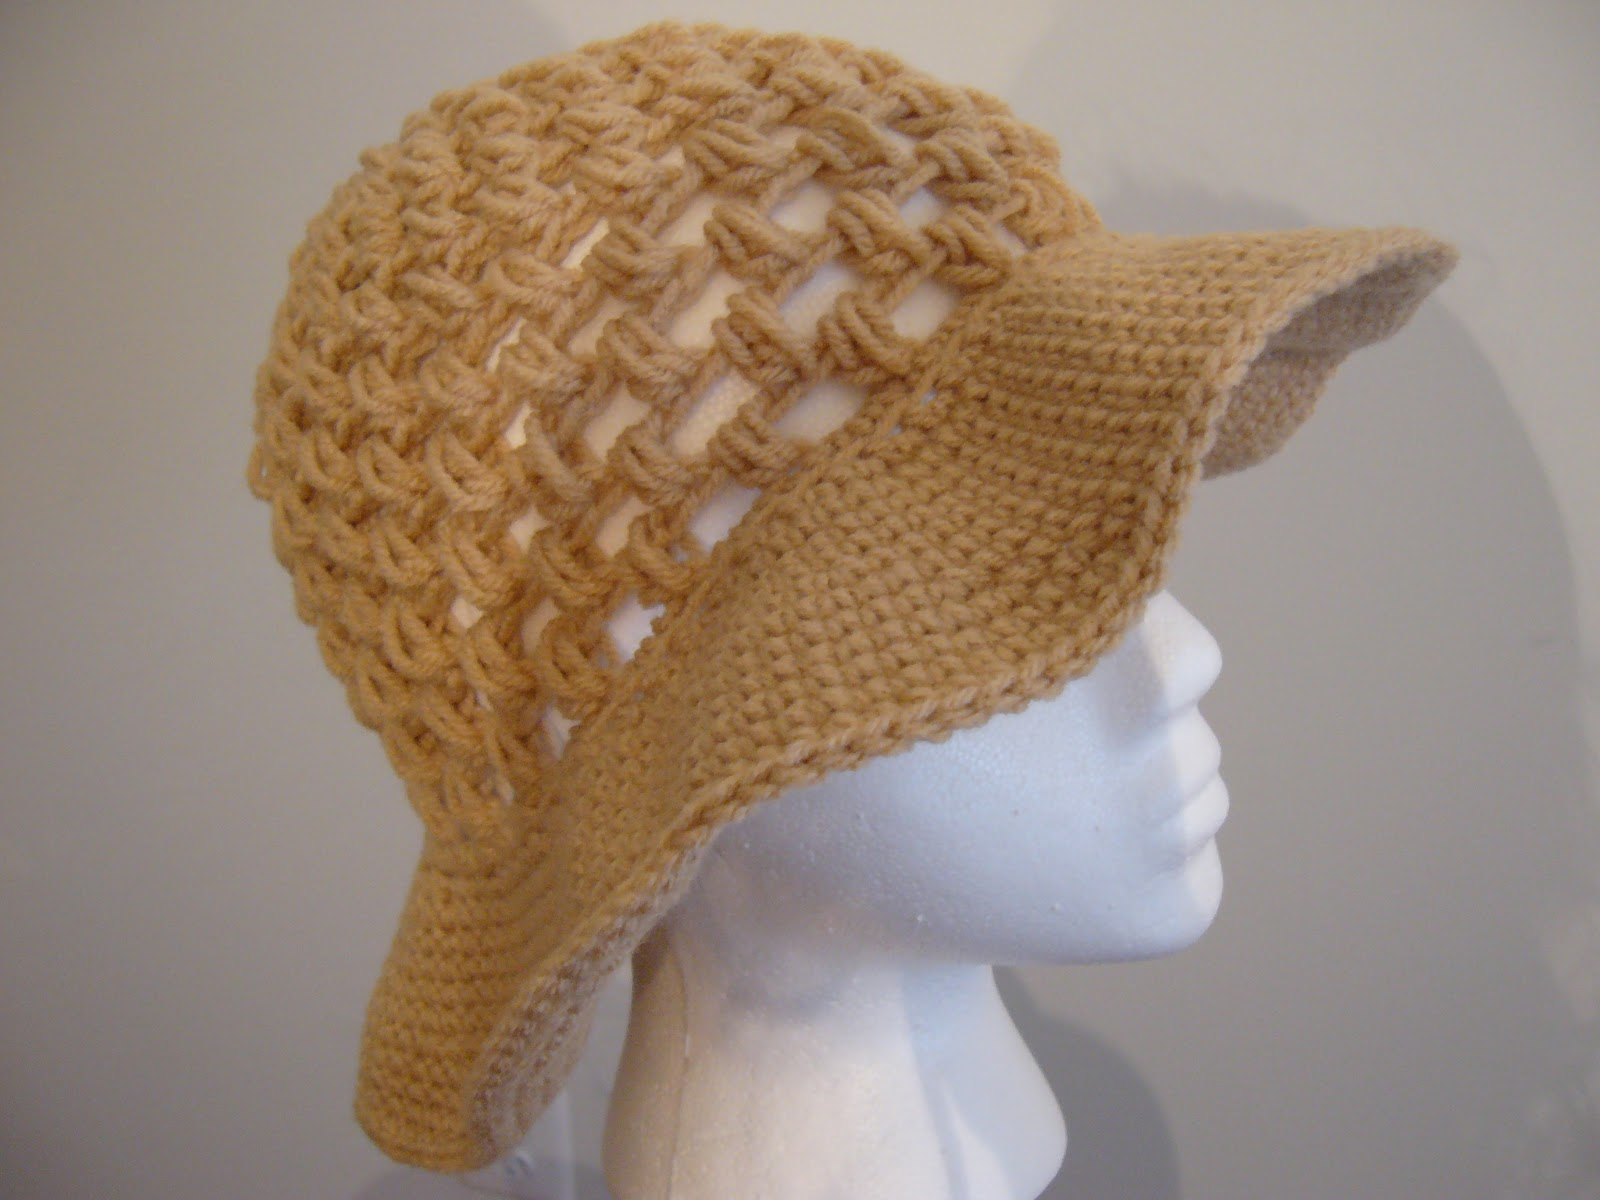 Free Crochet Pattern For Baby Floppy Hats : CROCHET FLOPPY BRIM HAT PATTERN Crochet Patterns